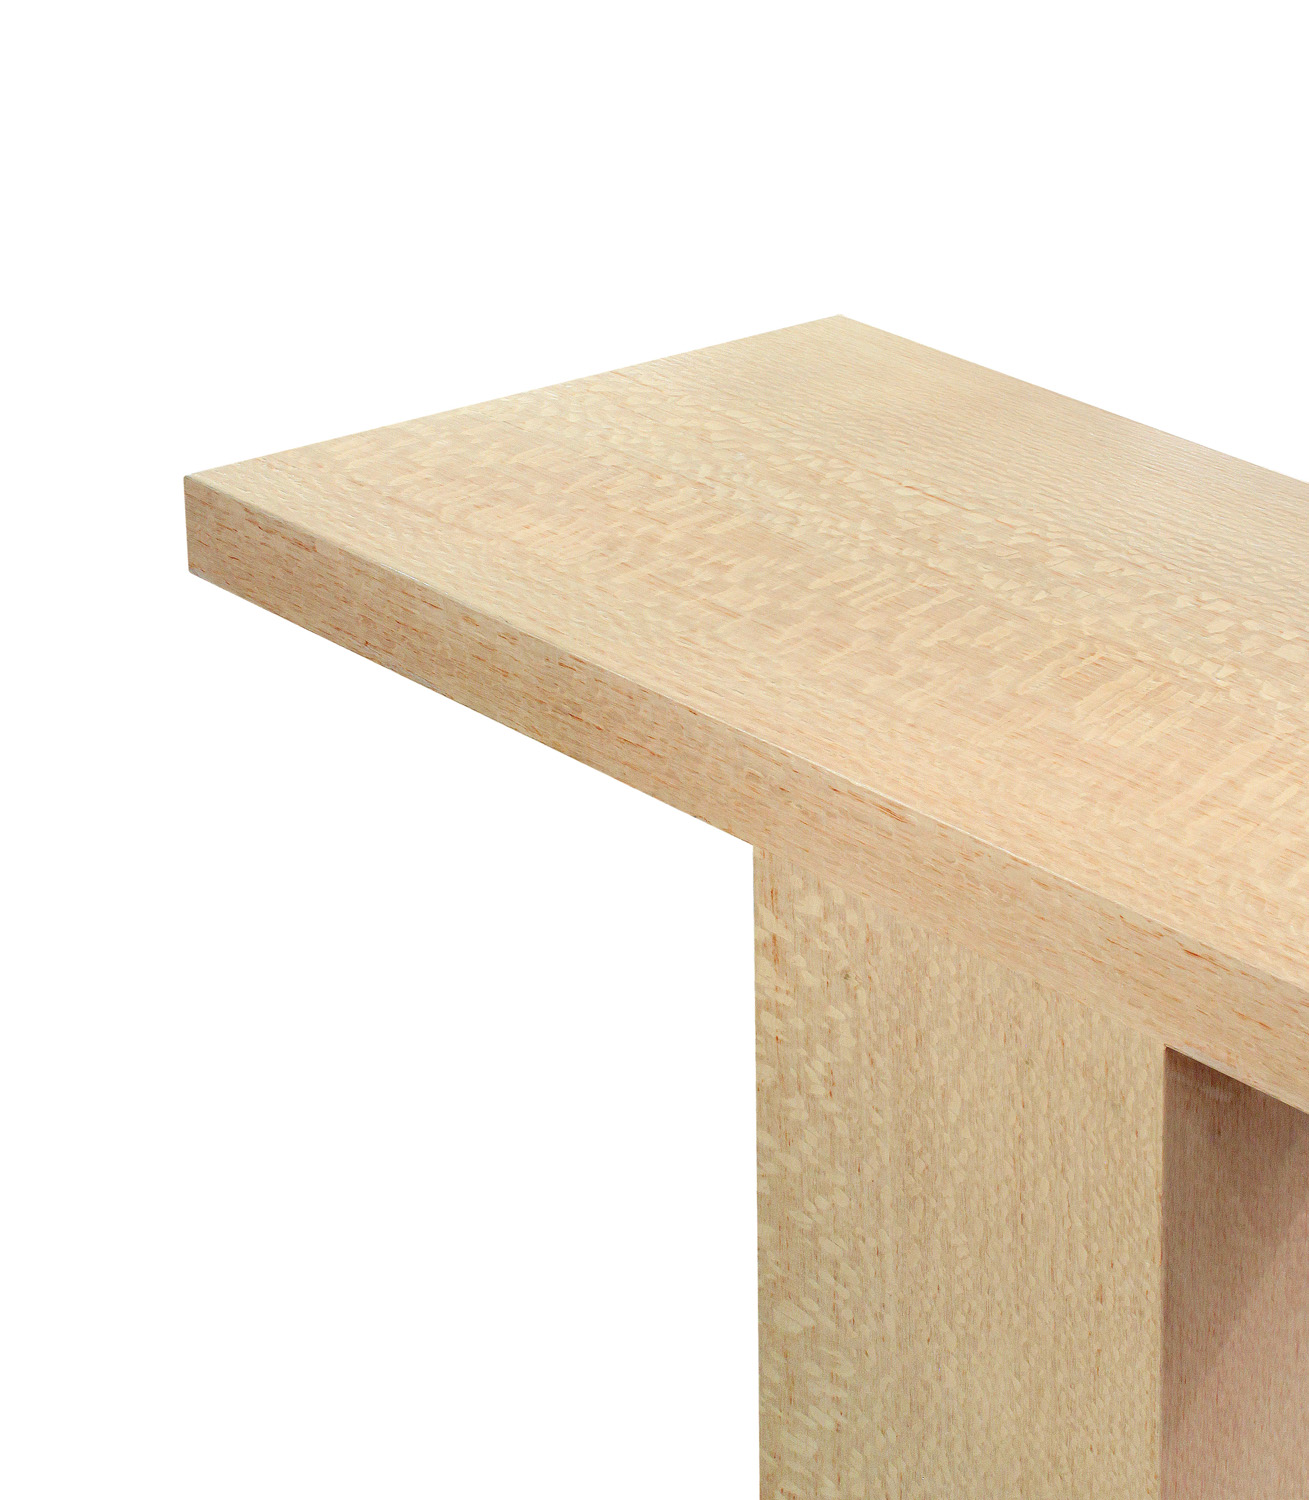 Springer 120 Altar Style lacewood consoletable99 detail2 hires.jpg